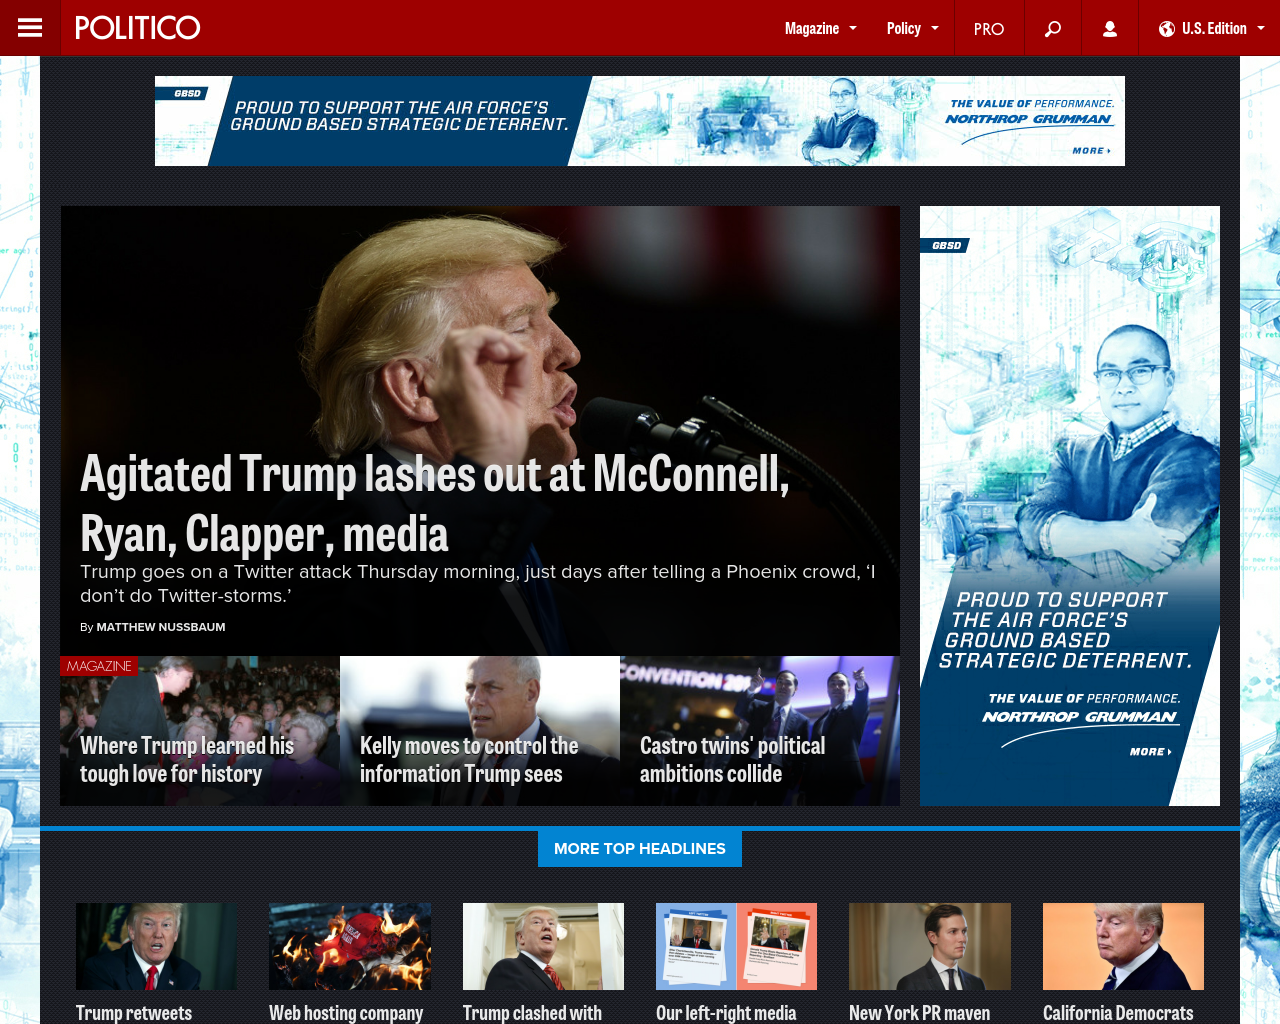 Politico-Advertising-Reviews-Pricing